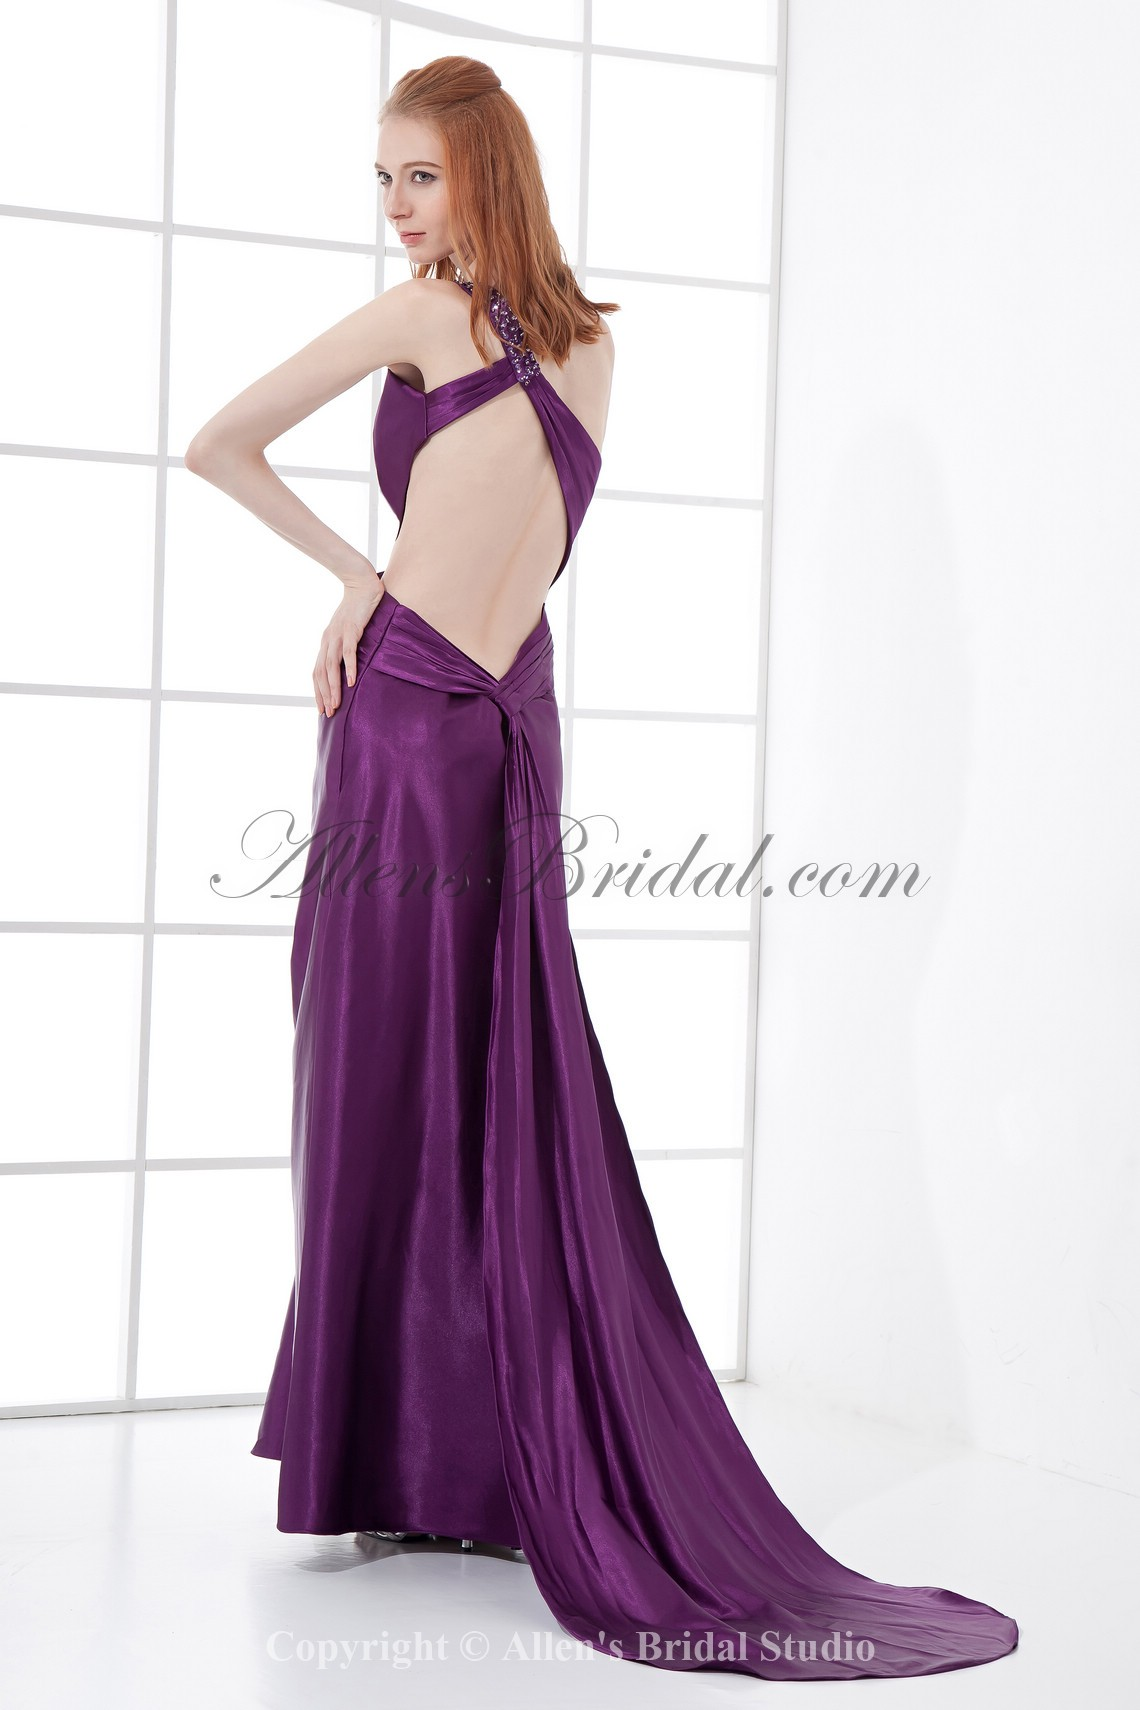 /66-528/satin-one-shoulder-ankle-length-a-line-prom-dress.jpg